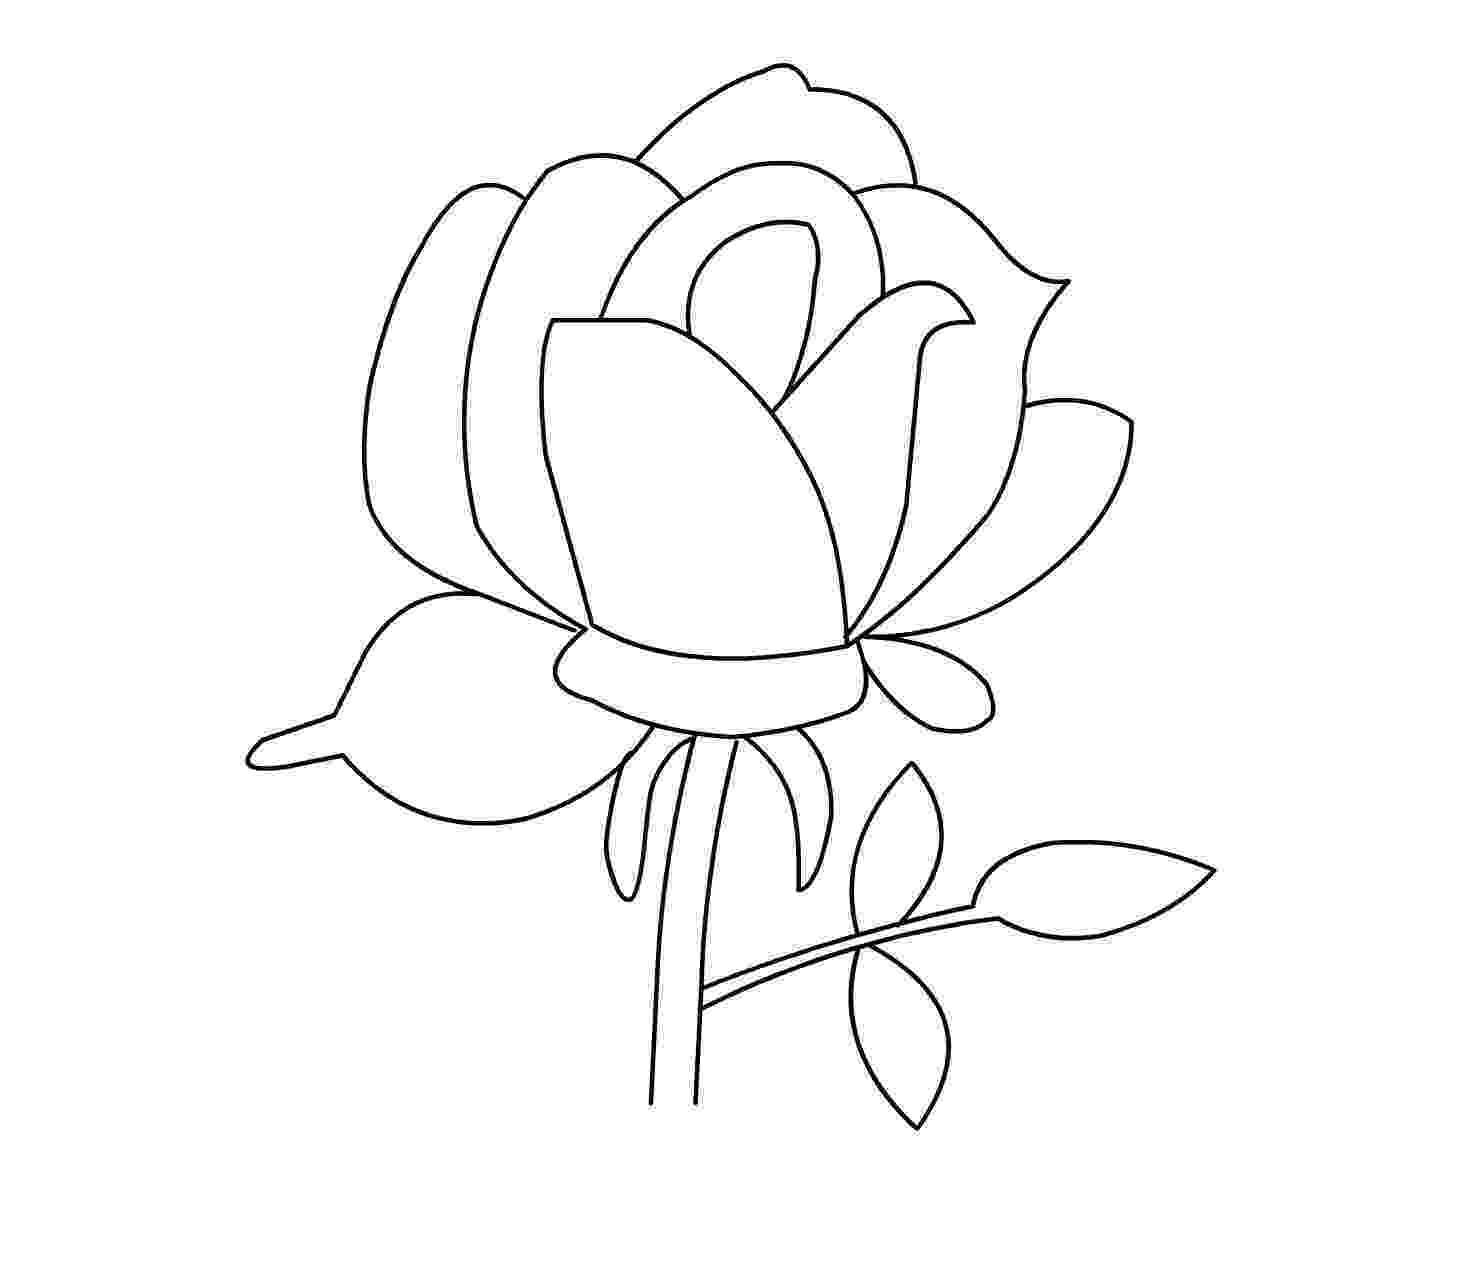 colouring pictures of roses the gallifrey crafting company page 6 roses pictures of colouring